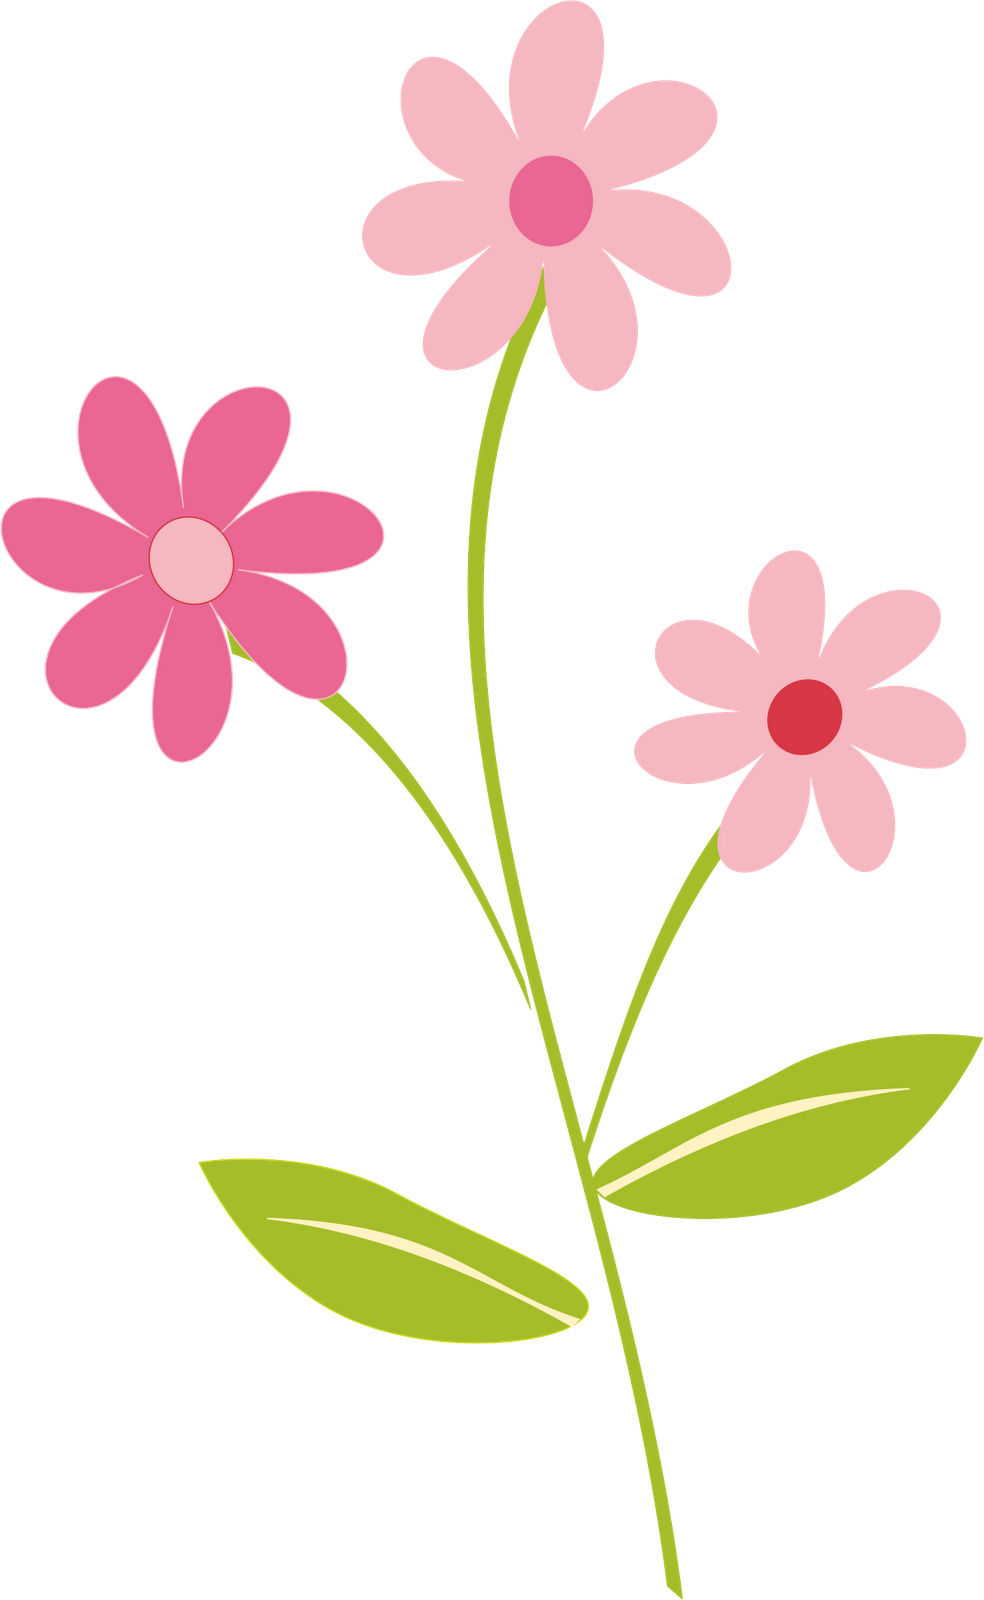 Spring flowers at getdrawings. Flower clipart elegant